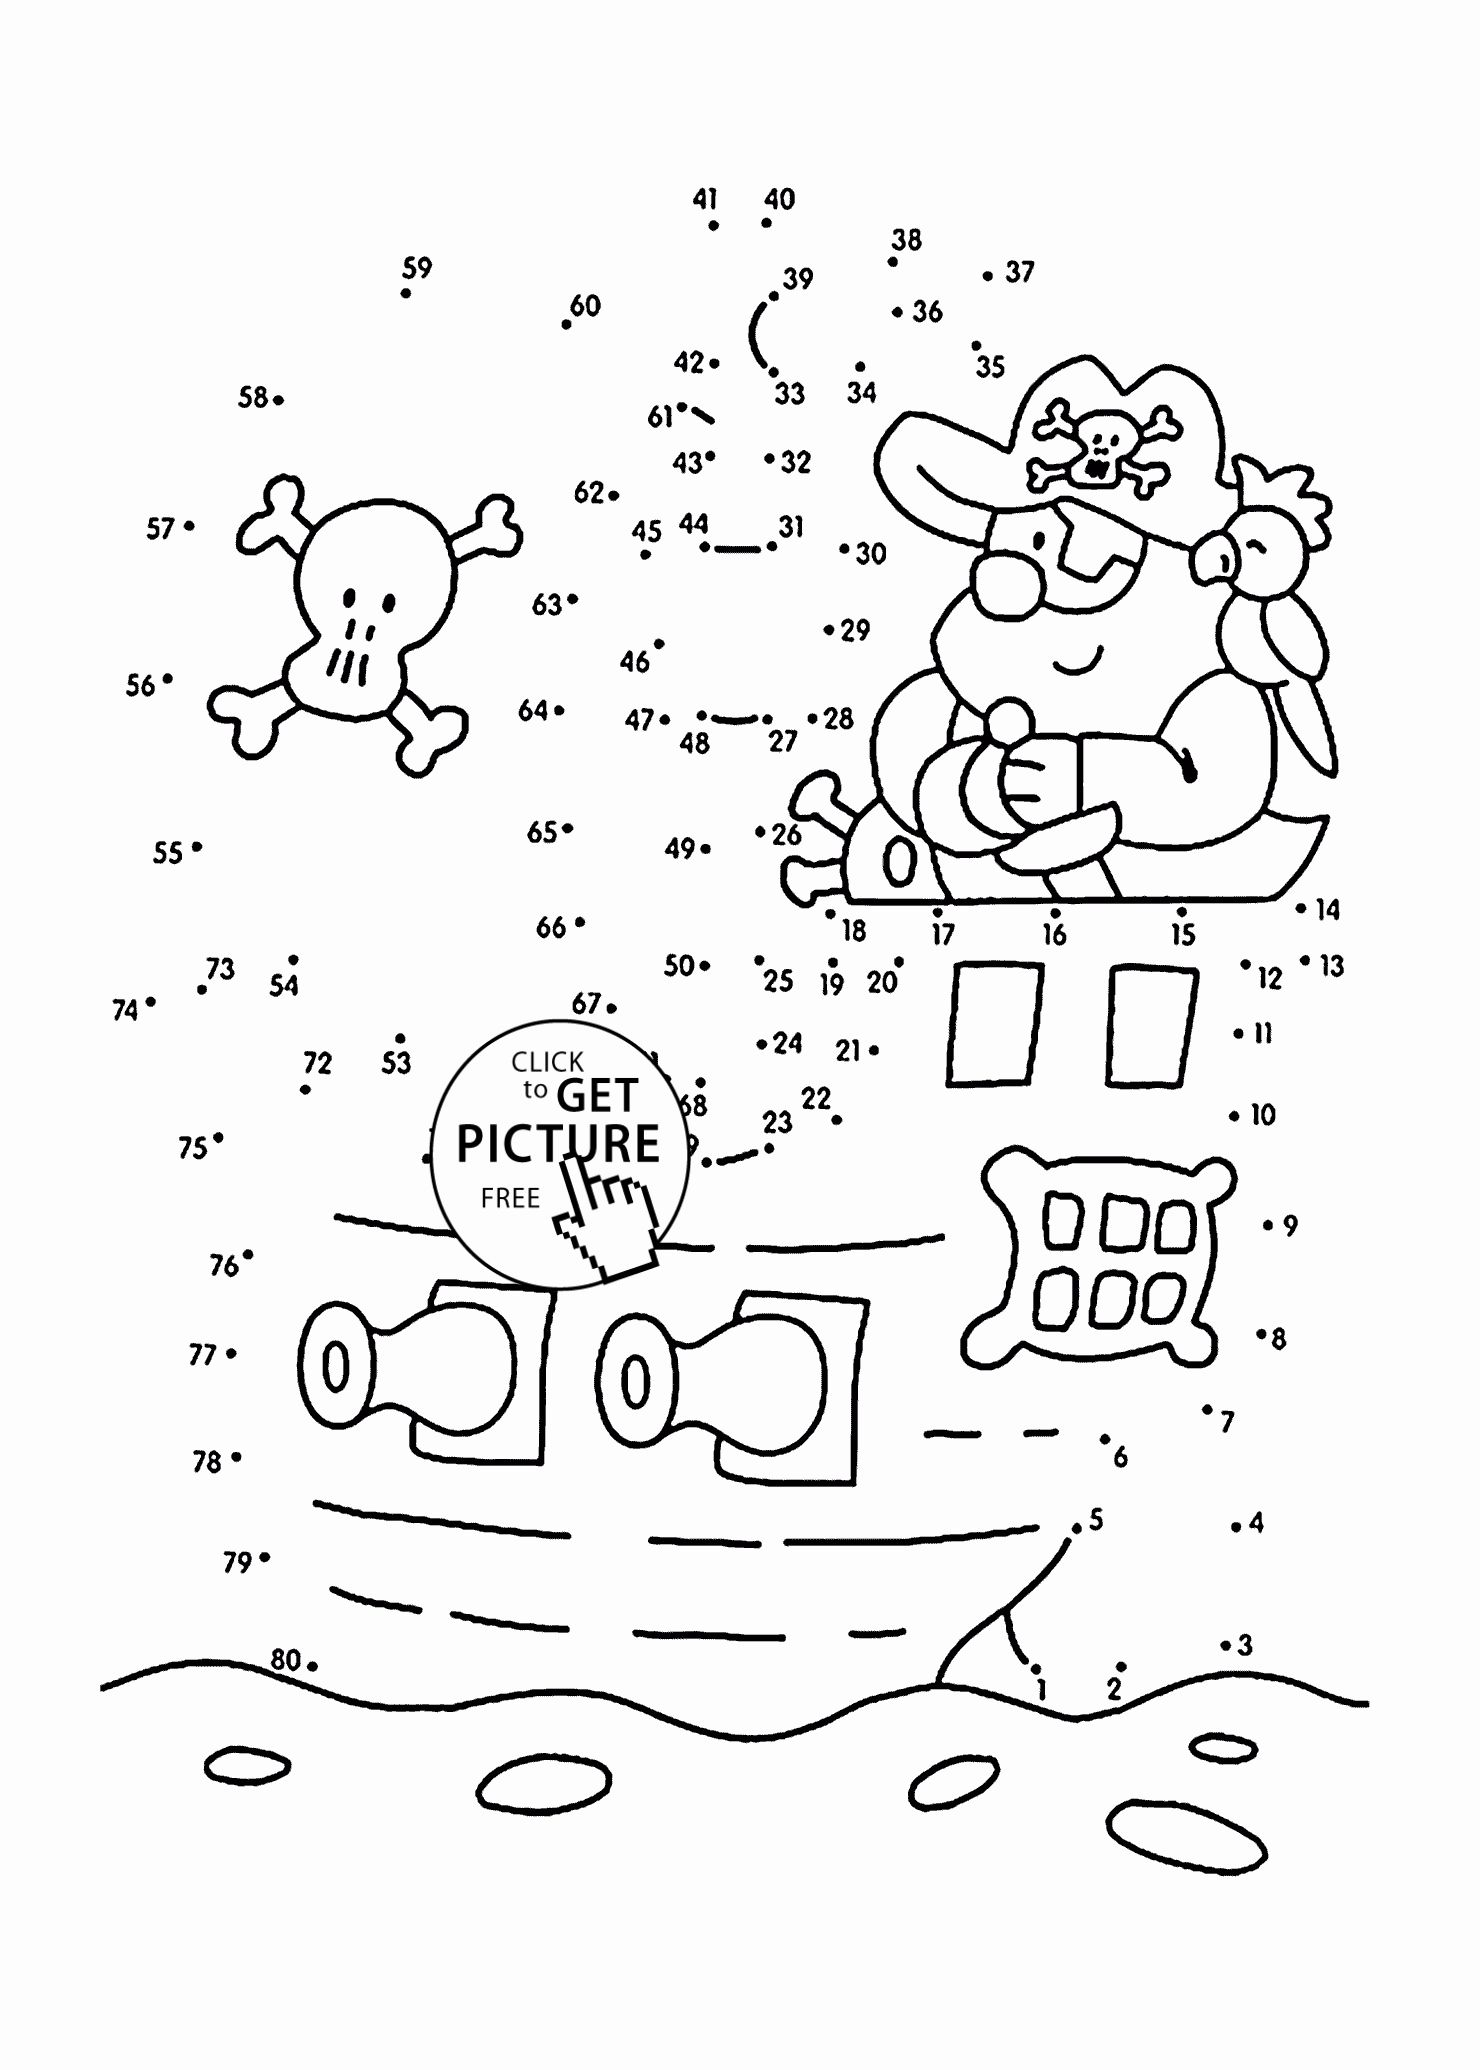 Coloring Math Activities For Preschoolers Luxury Pirate Dot To Dot Coloring Pages For Kids Connect The D Pirate Coloring Pages Pirate Activities Dot Worksheets [ 2070 x 1480 Pixel ]